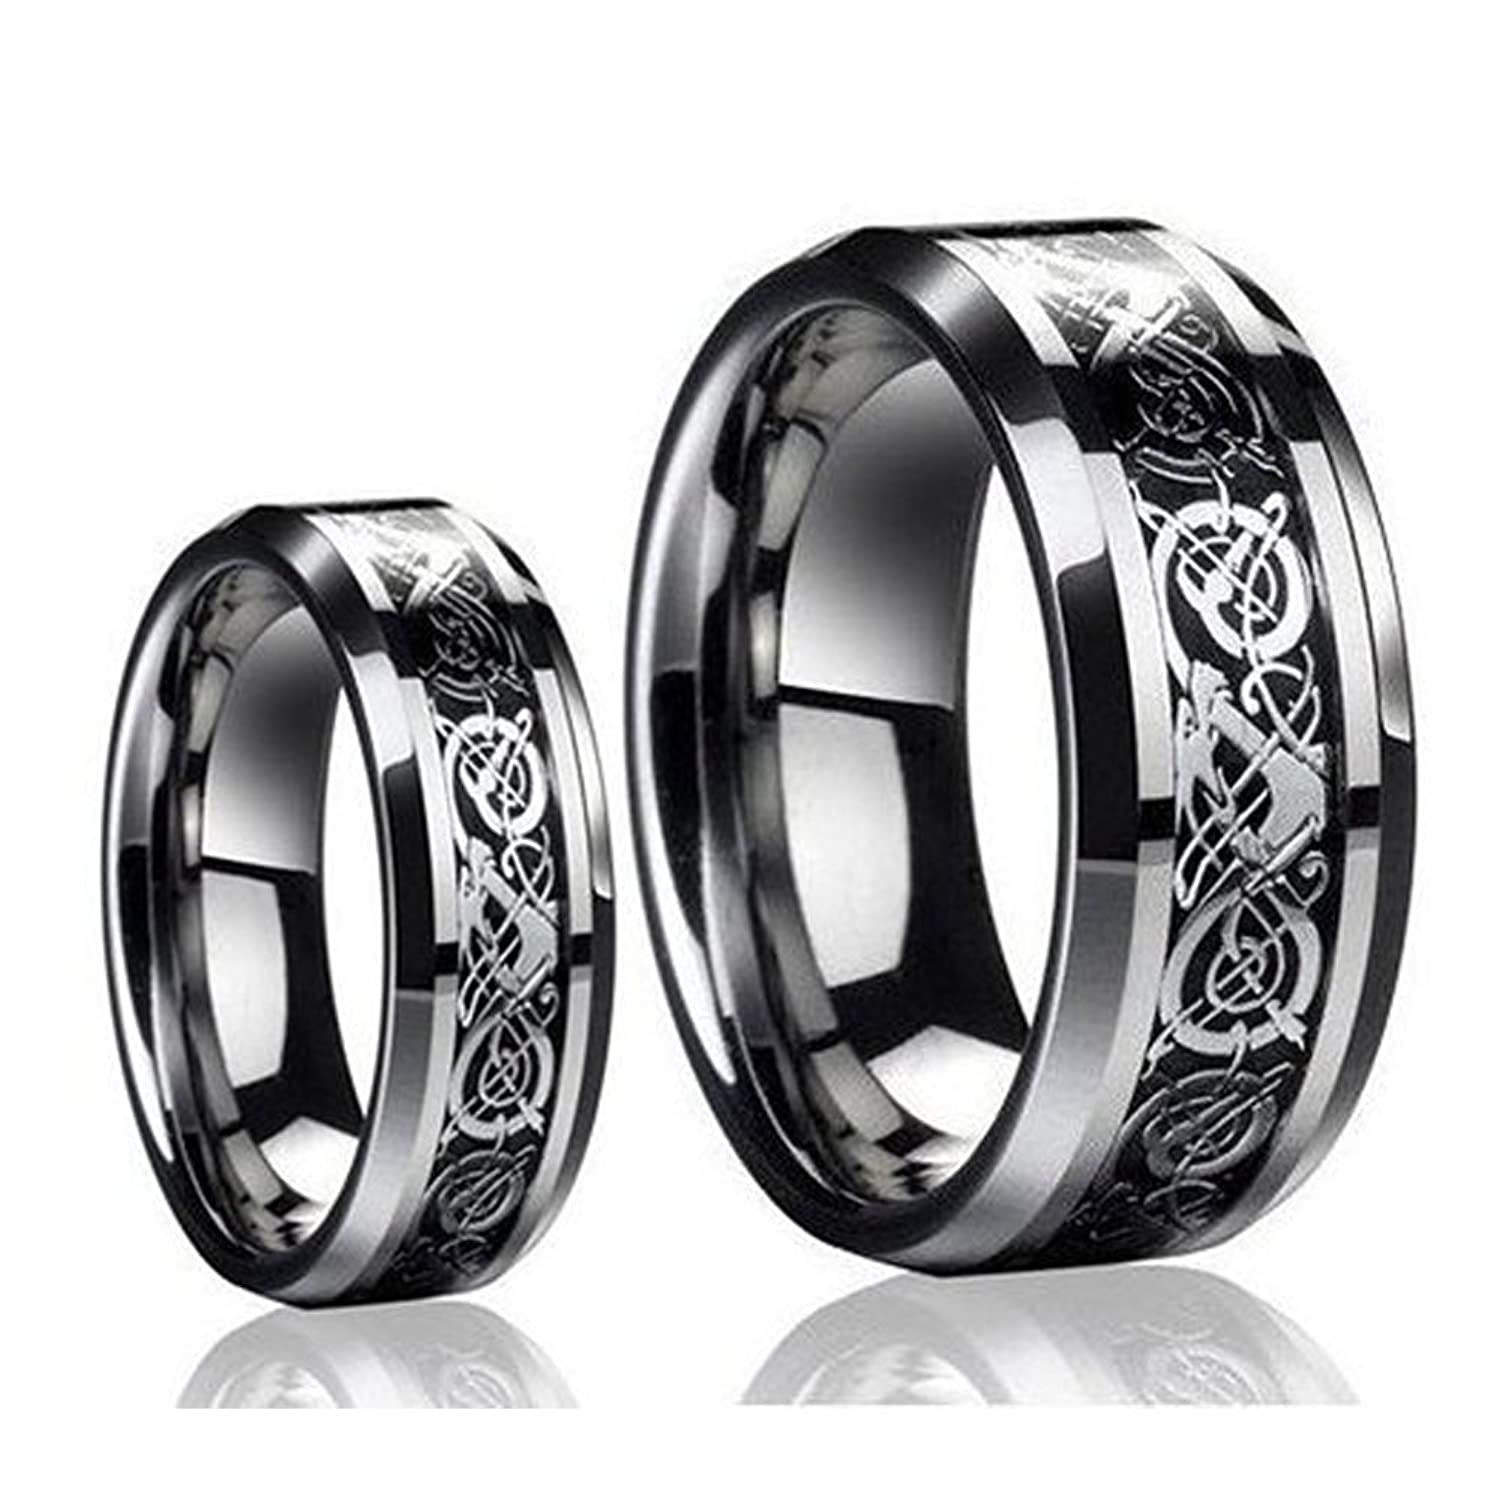 His & Her's 8MM/6MM Dragon Design Tungsten Carbide Wedding Band Ring Set (Available Sizes 5-14 Including Half Sizes)